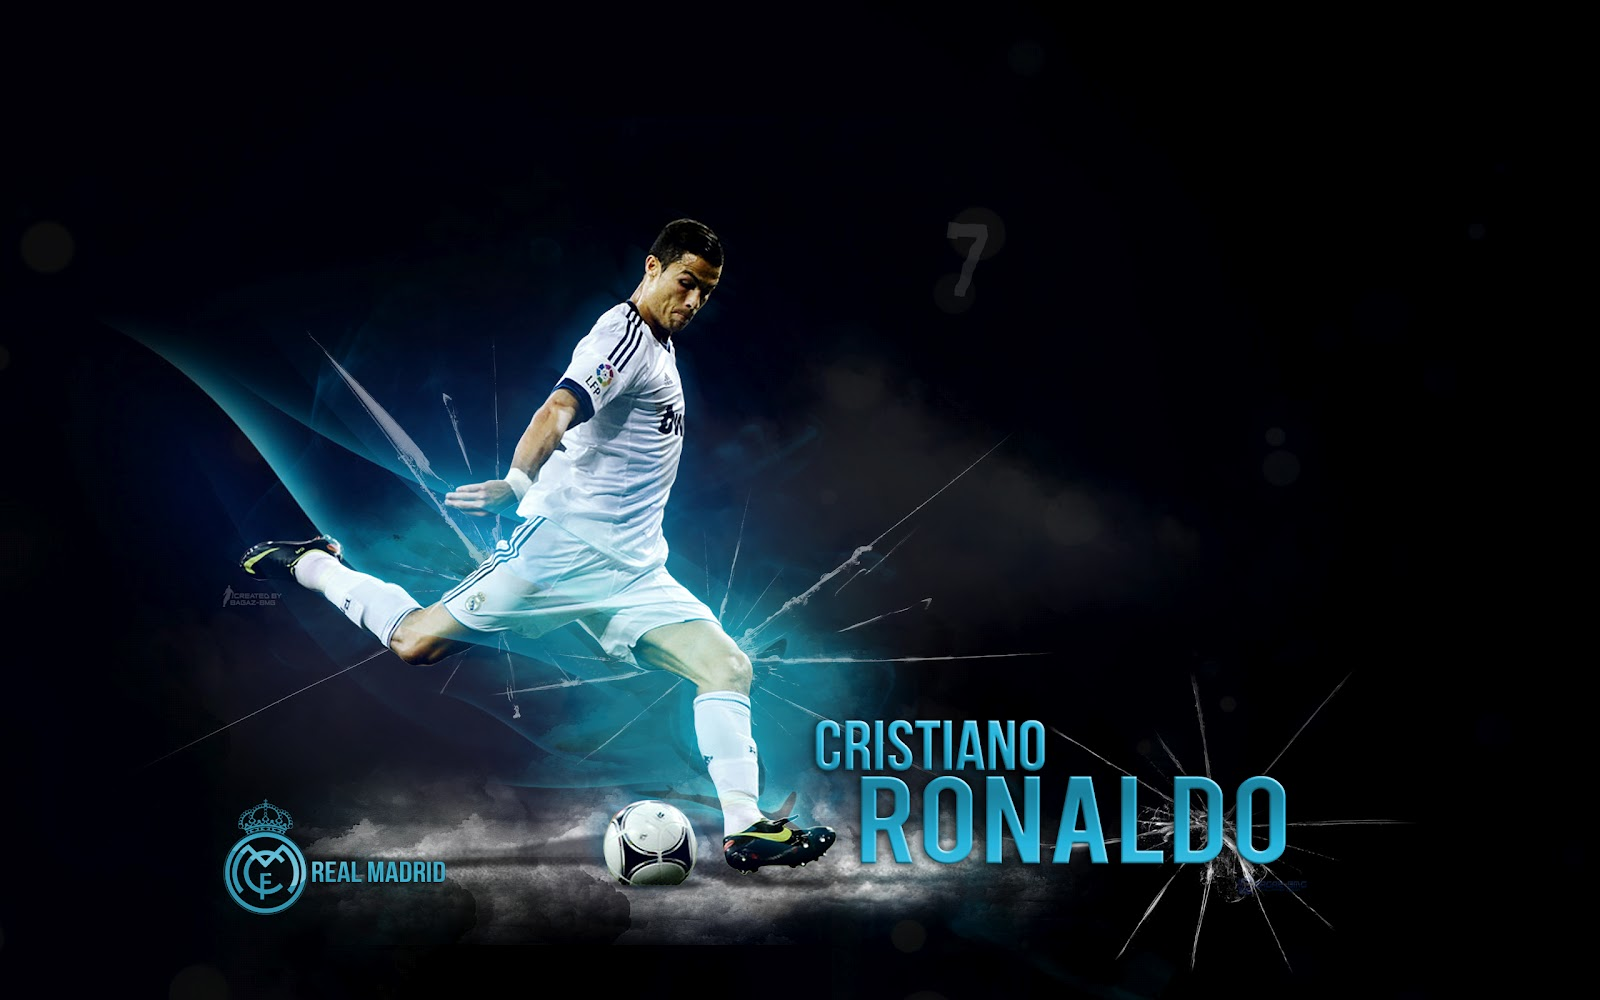 Cristiano Ronaldo Wallpapers (469)